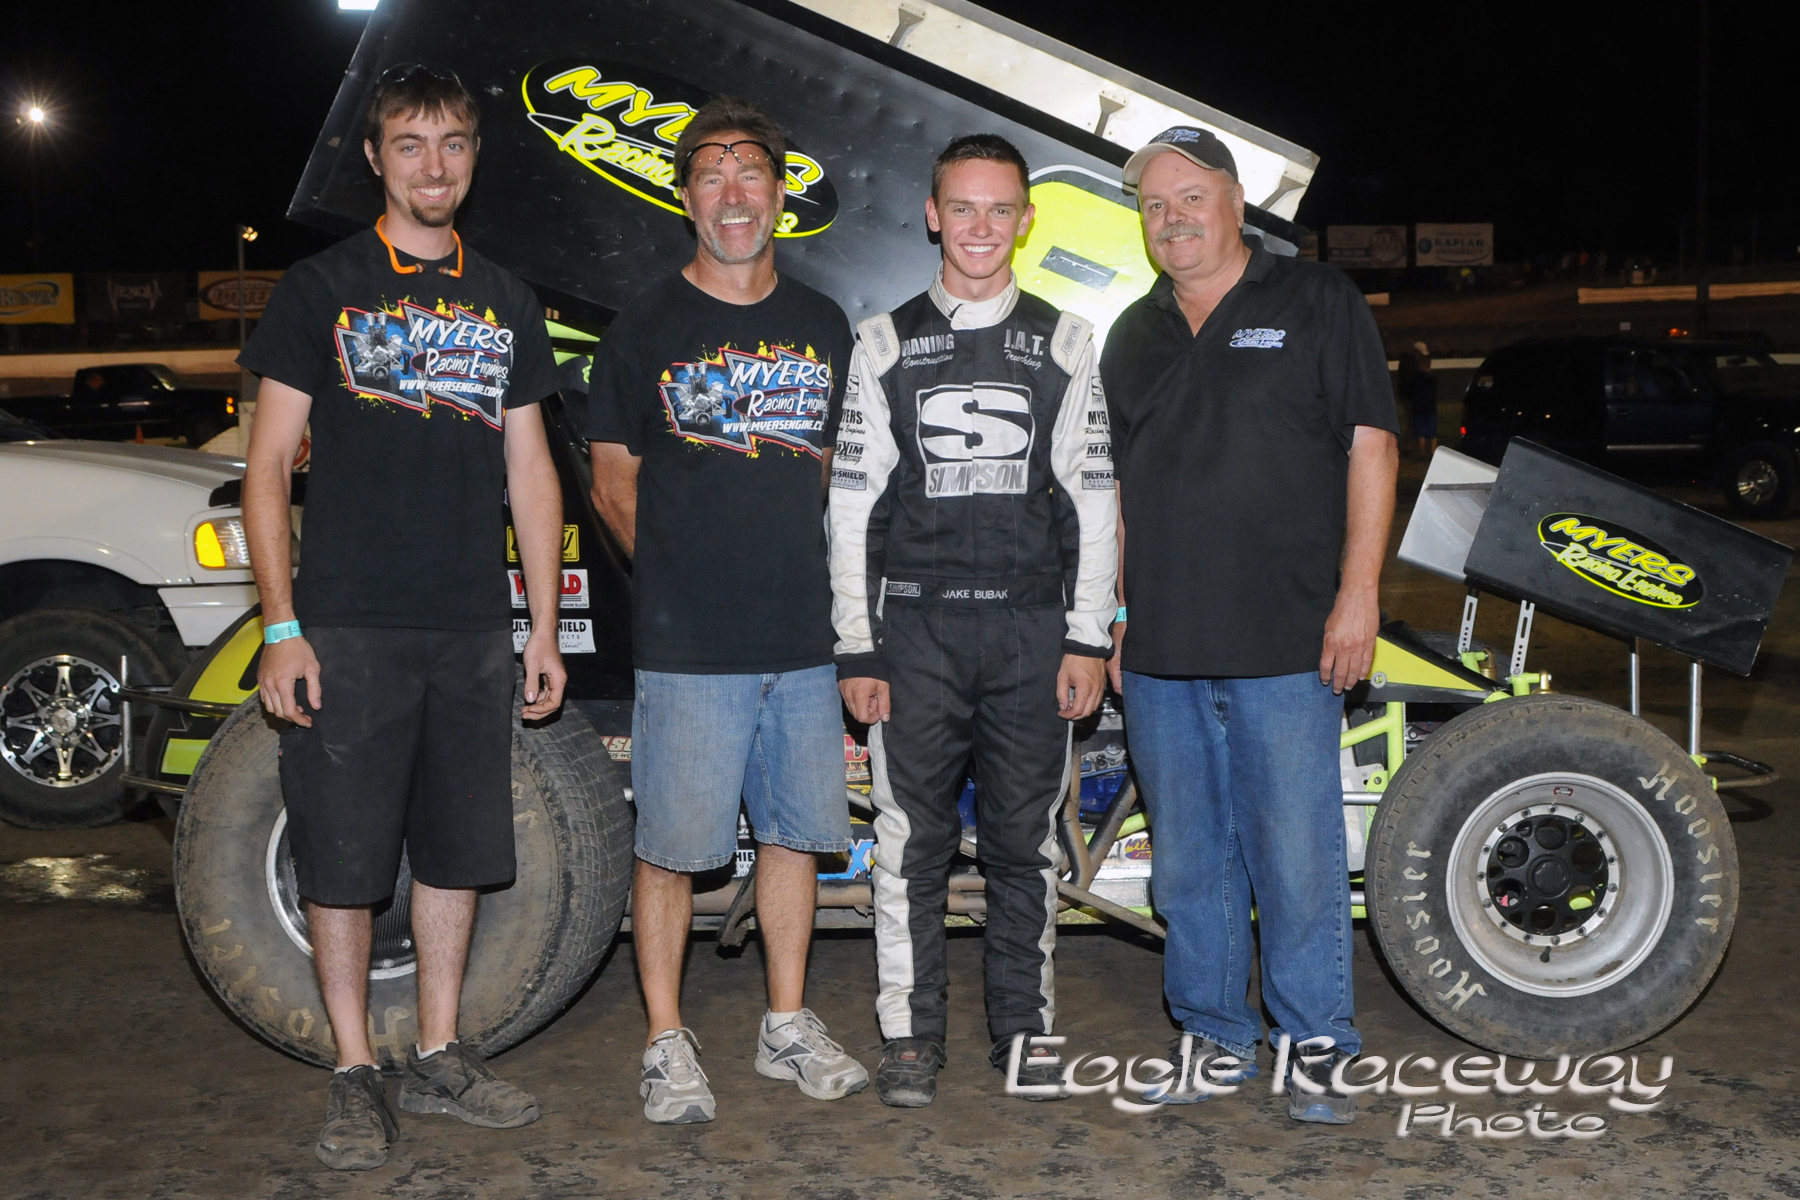 eagle-07-19-14-427-jake-bubak-and-crew-joeorthphotos